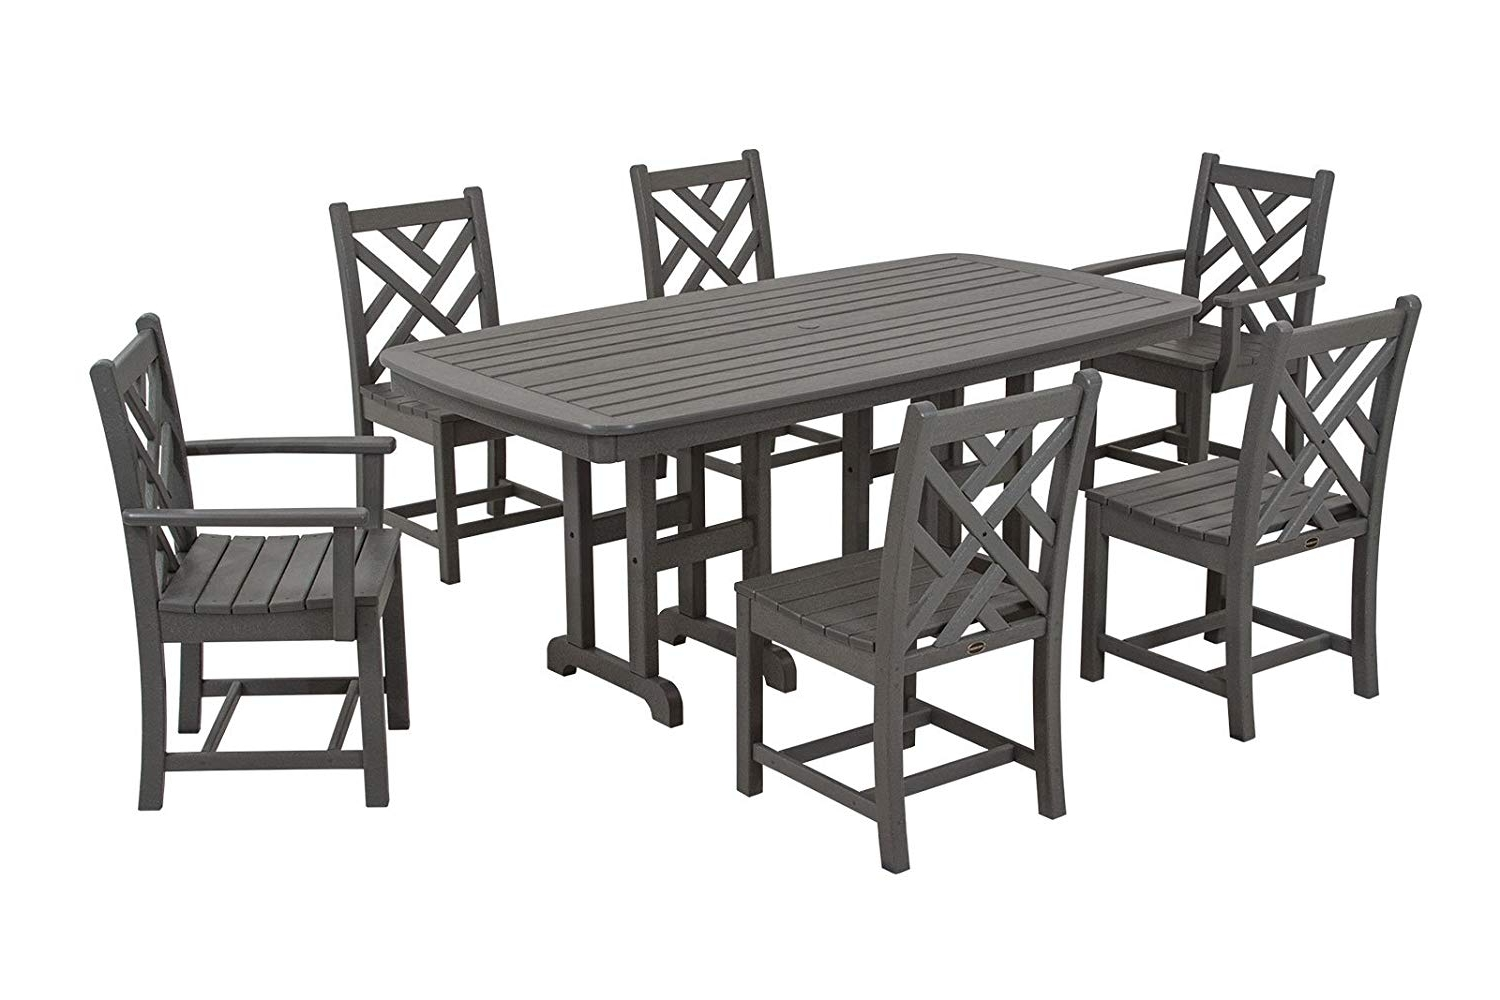 Most Popular Market 7 Piece Counter Sets For Amazon : Polywood Pws121 1 Gy Chippendale 7 Piece Dining Set (Gallery 15 of 25)